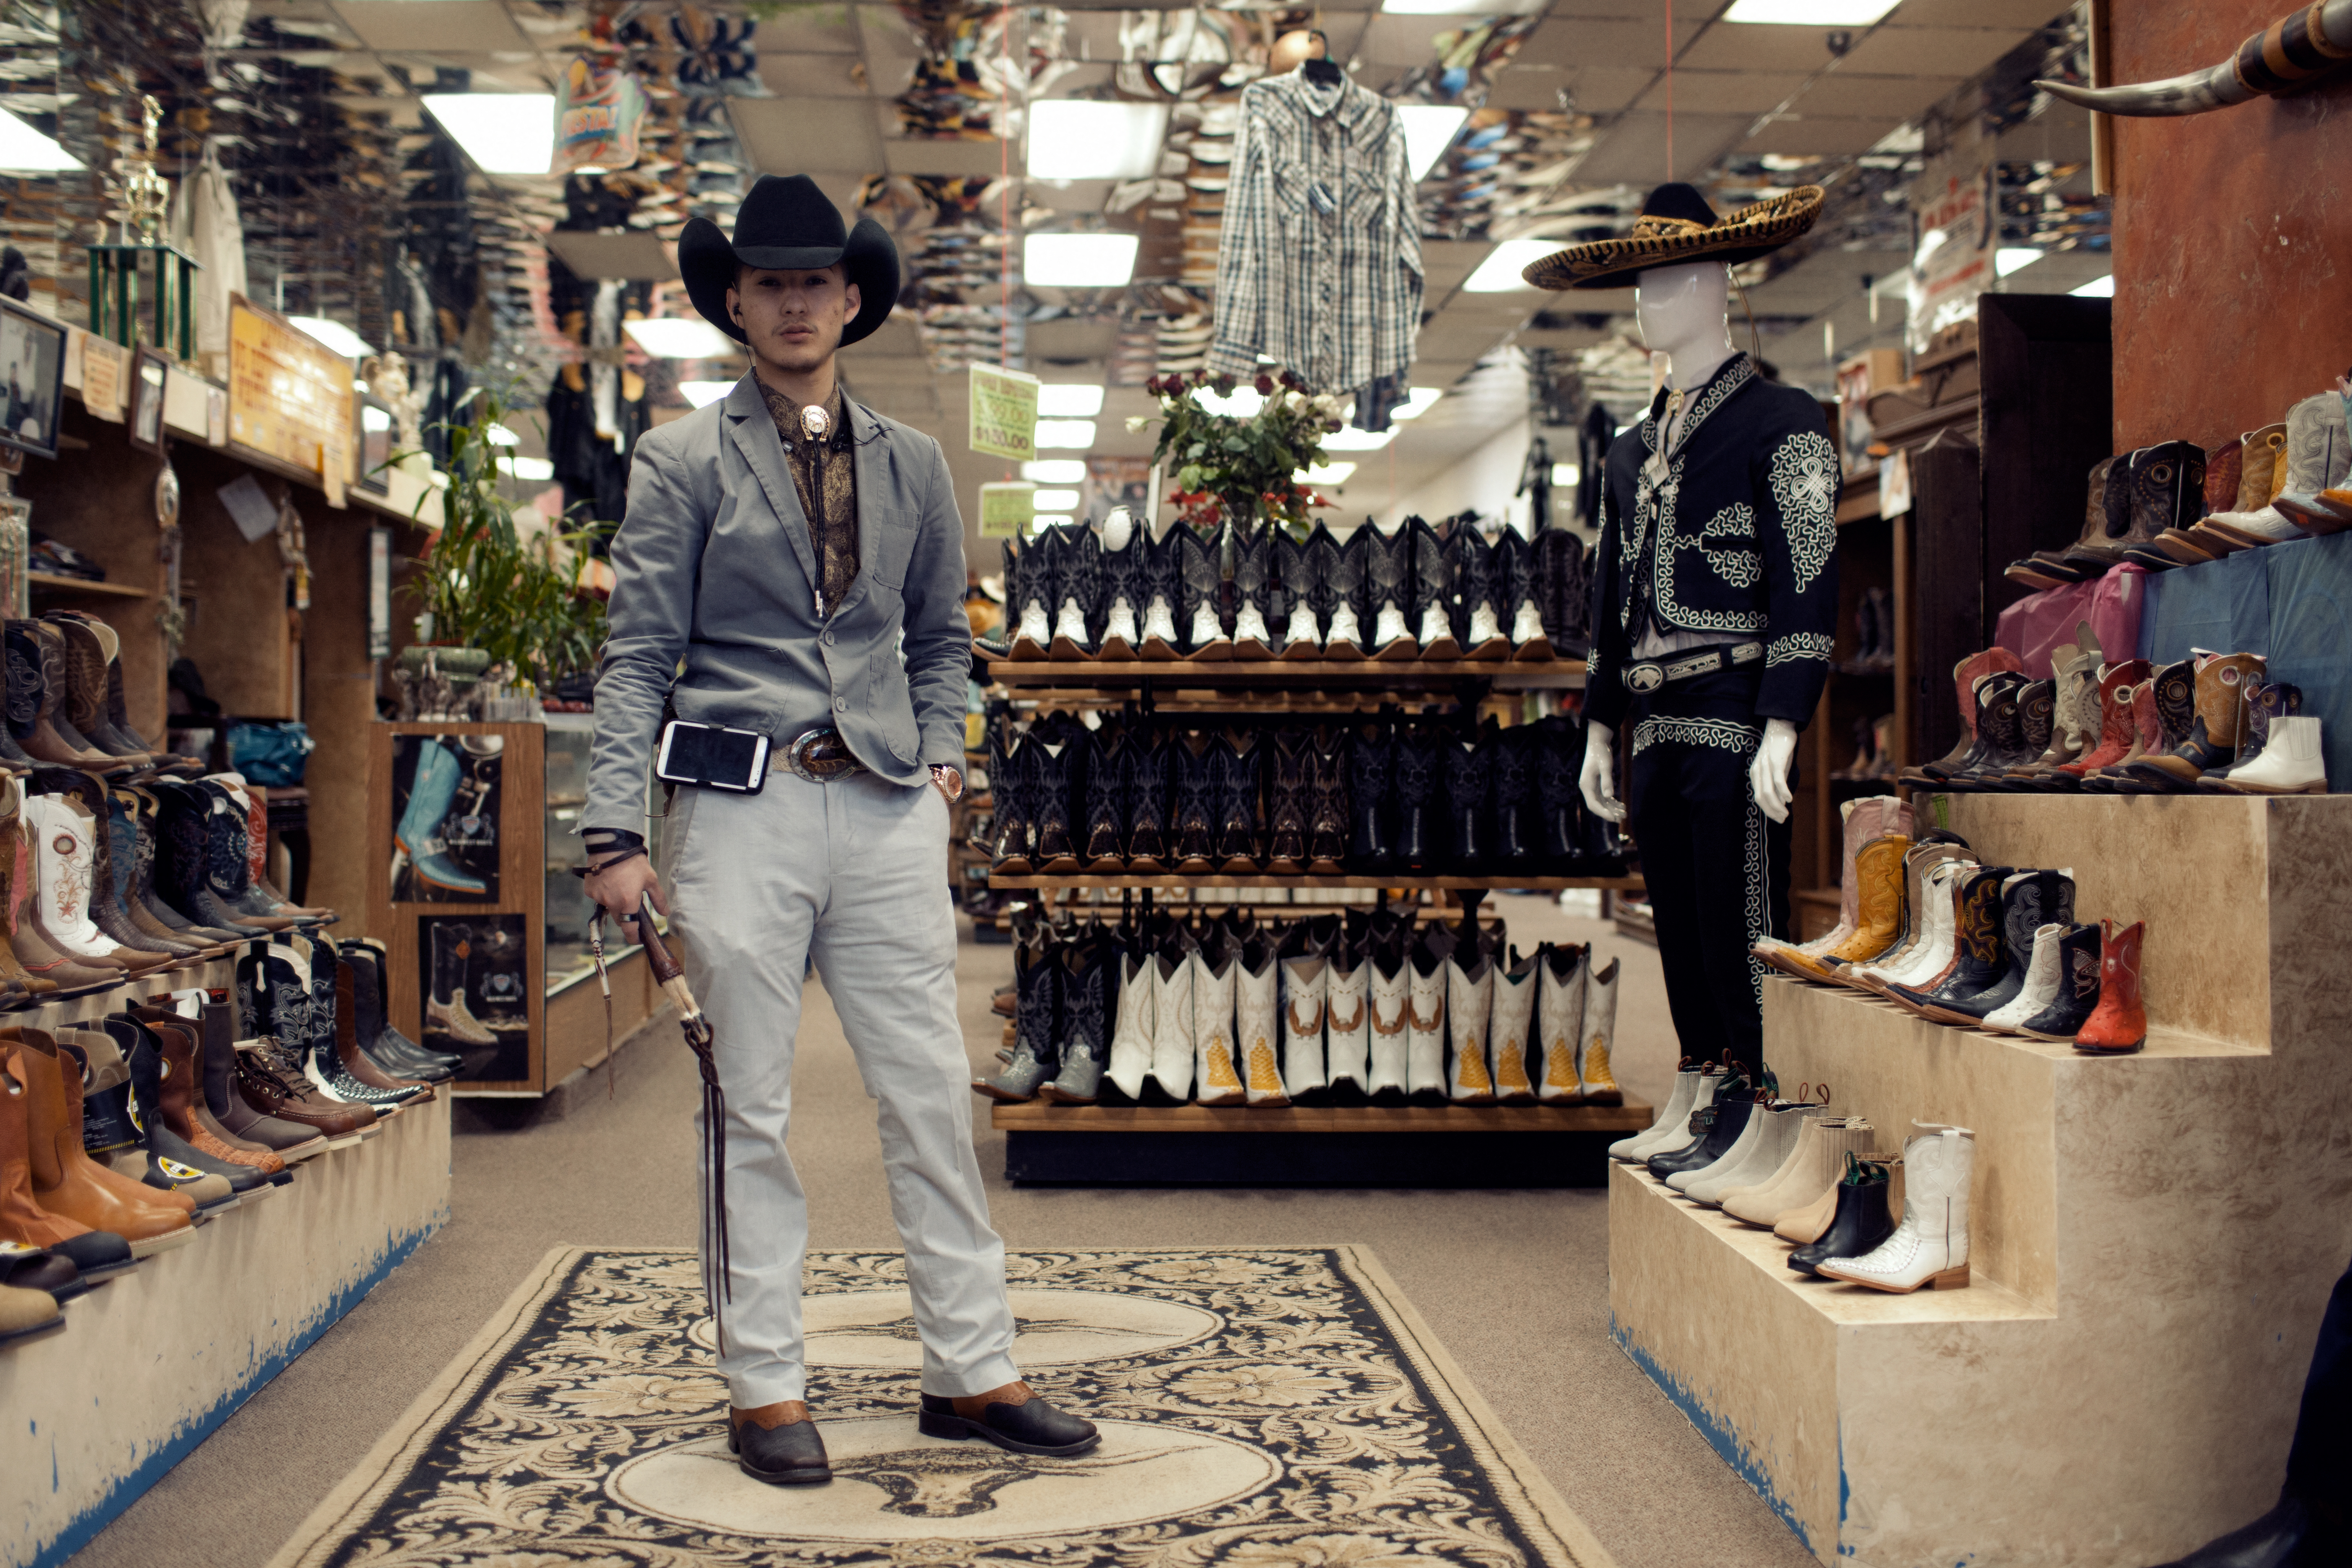 A portrait of Jorge Barraza, 19, from Long Beach, Calif., who works at a store specialising in Western wear. Jorge has spent time in both the U.S. and in Durango, Mexico, where his family is originally from.